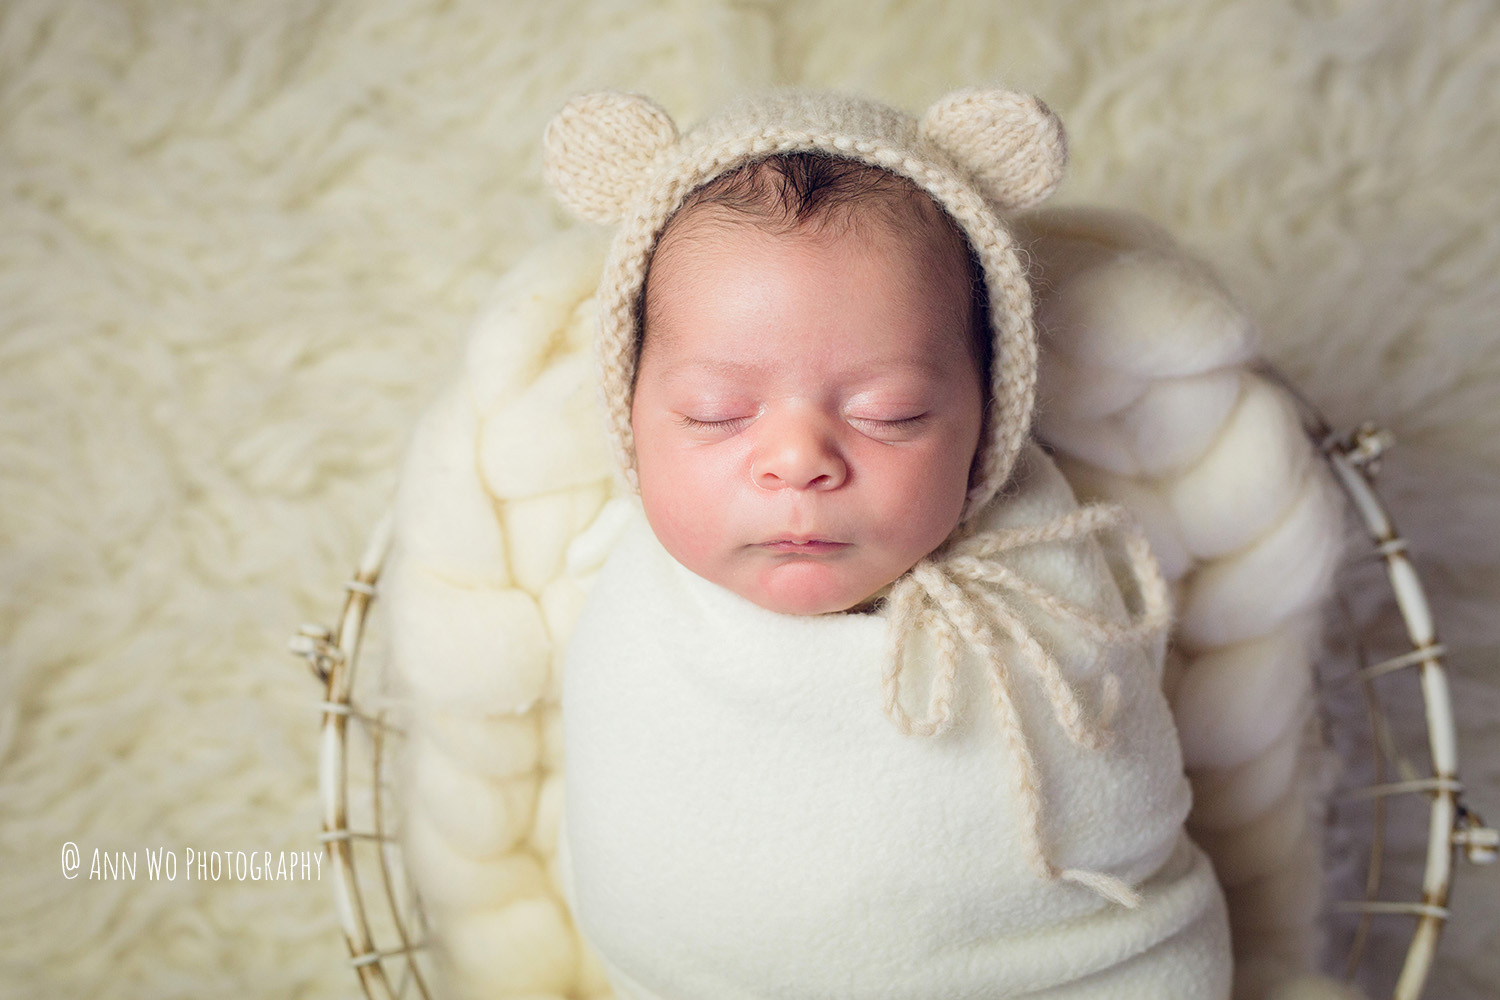 newborn-photography-london-ann-wo-03.JPG